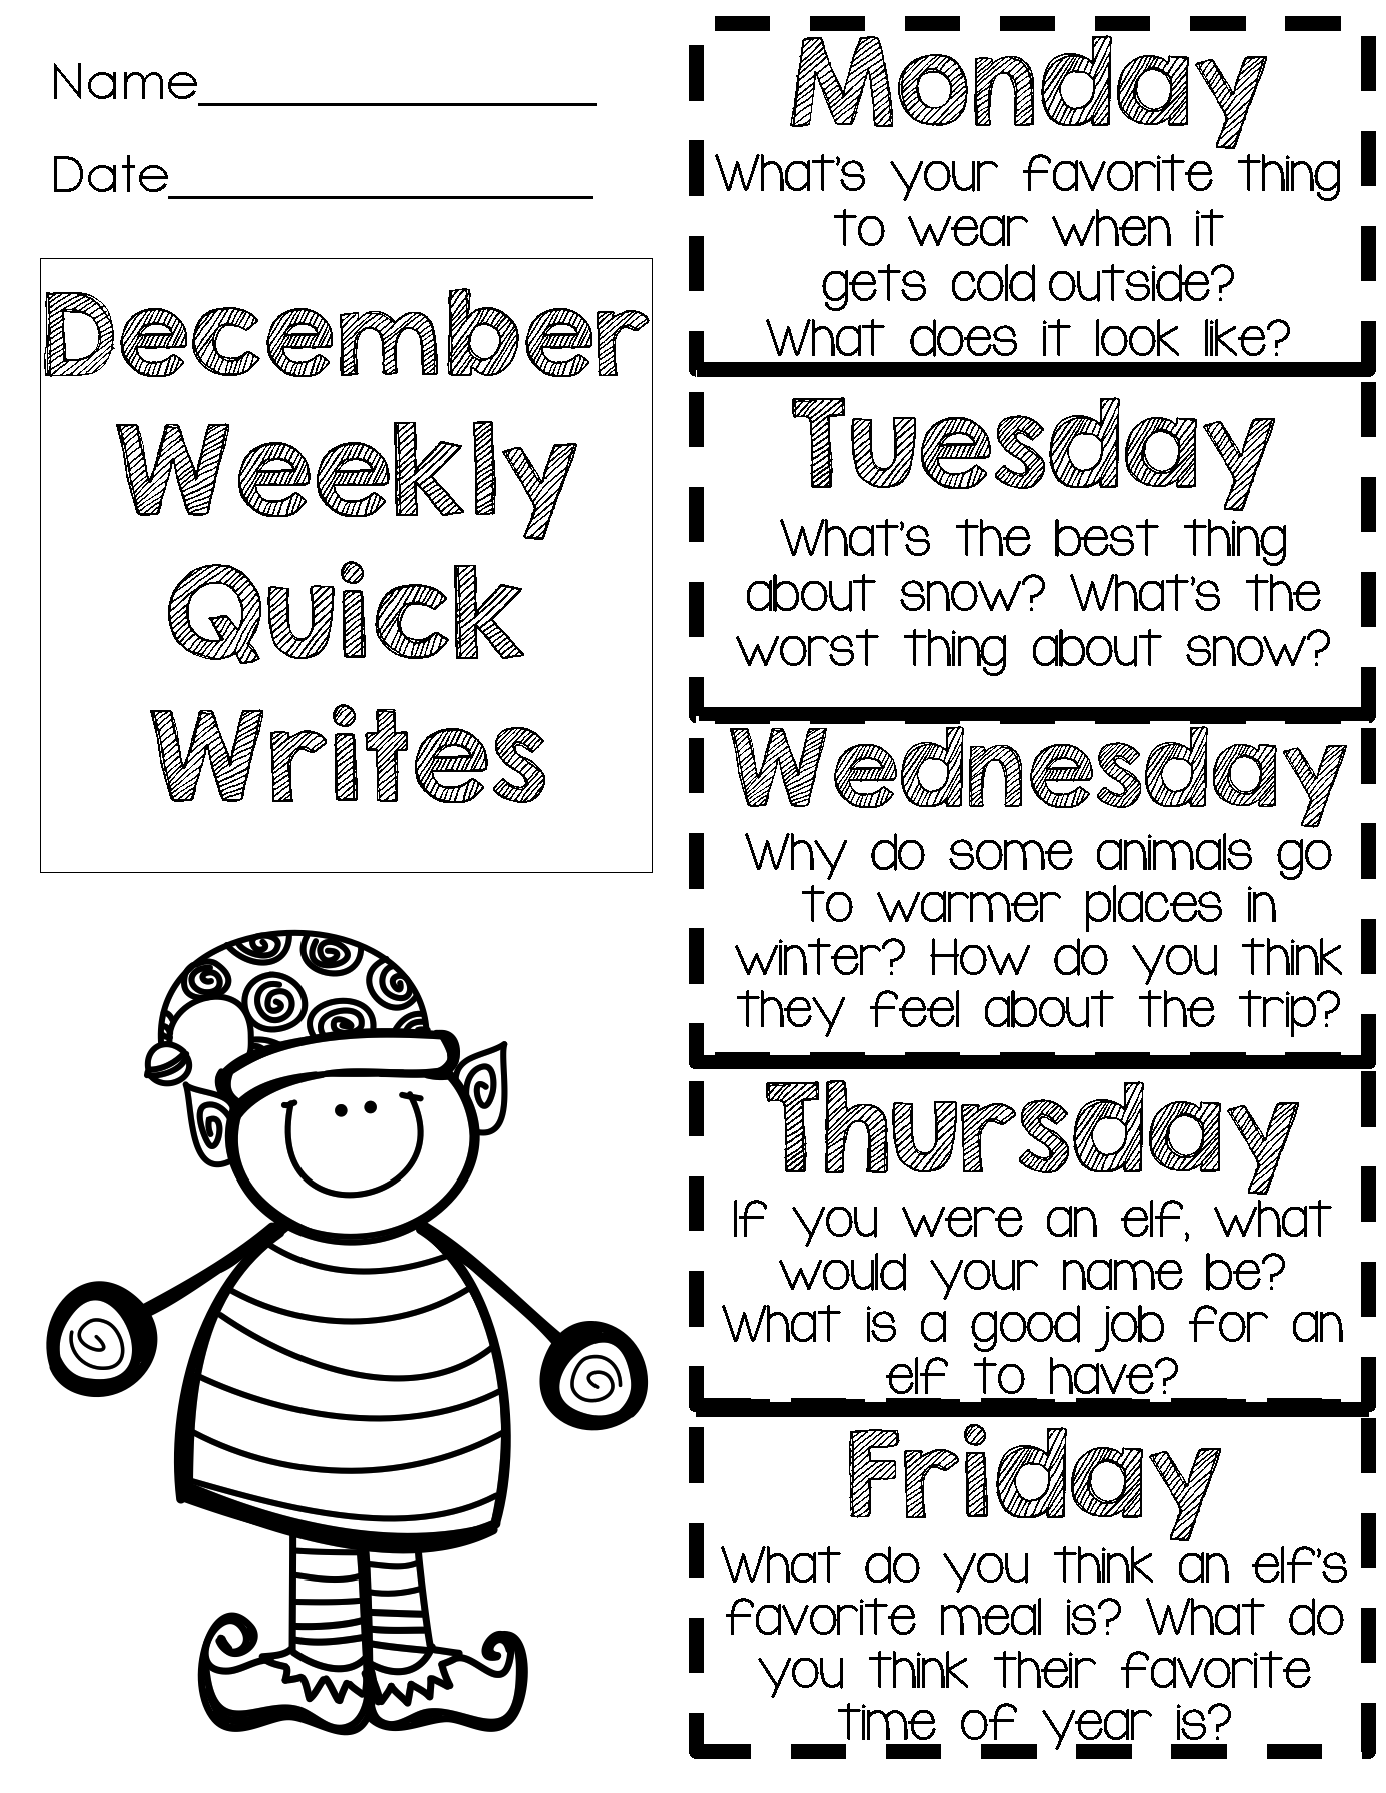 December Quick Writes Fun Prompts One Sheet For The Week Christmas Writing Prompts Christmas Writing Classroom Writing